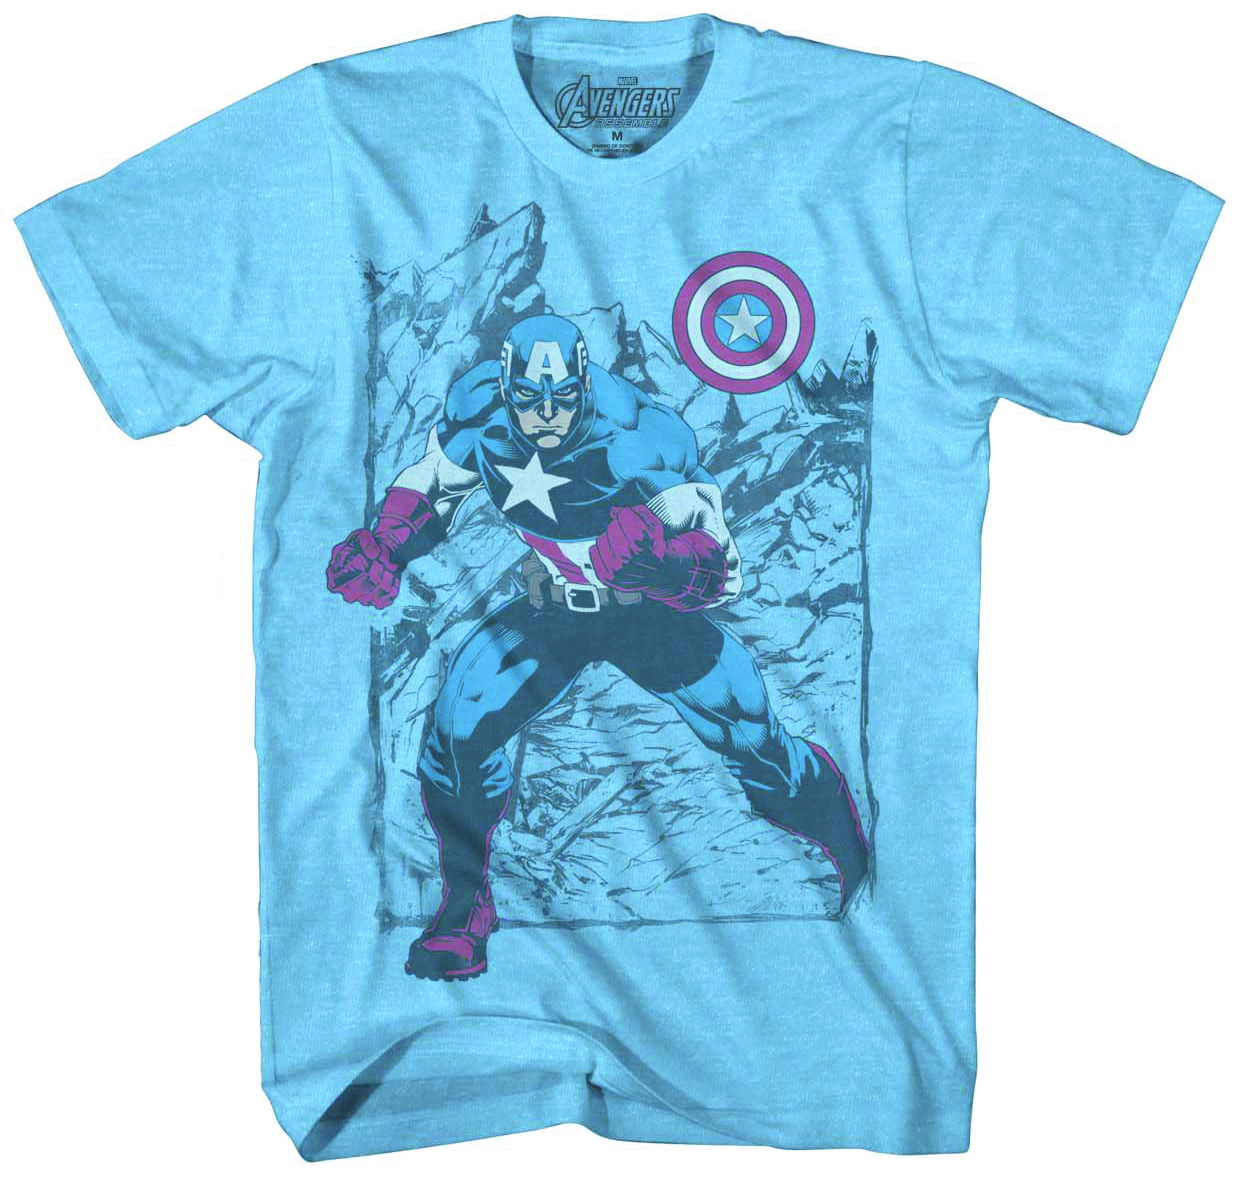 CAPTAIN AMERICA FADED GLORY PX BLUE T/S MED